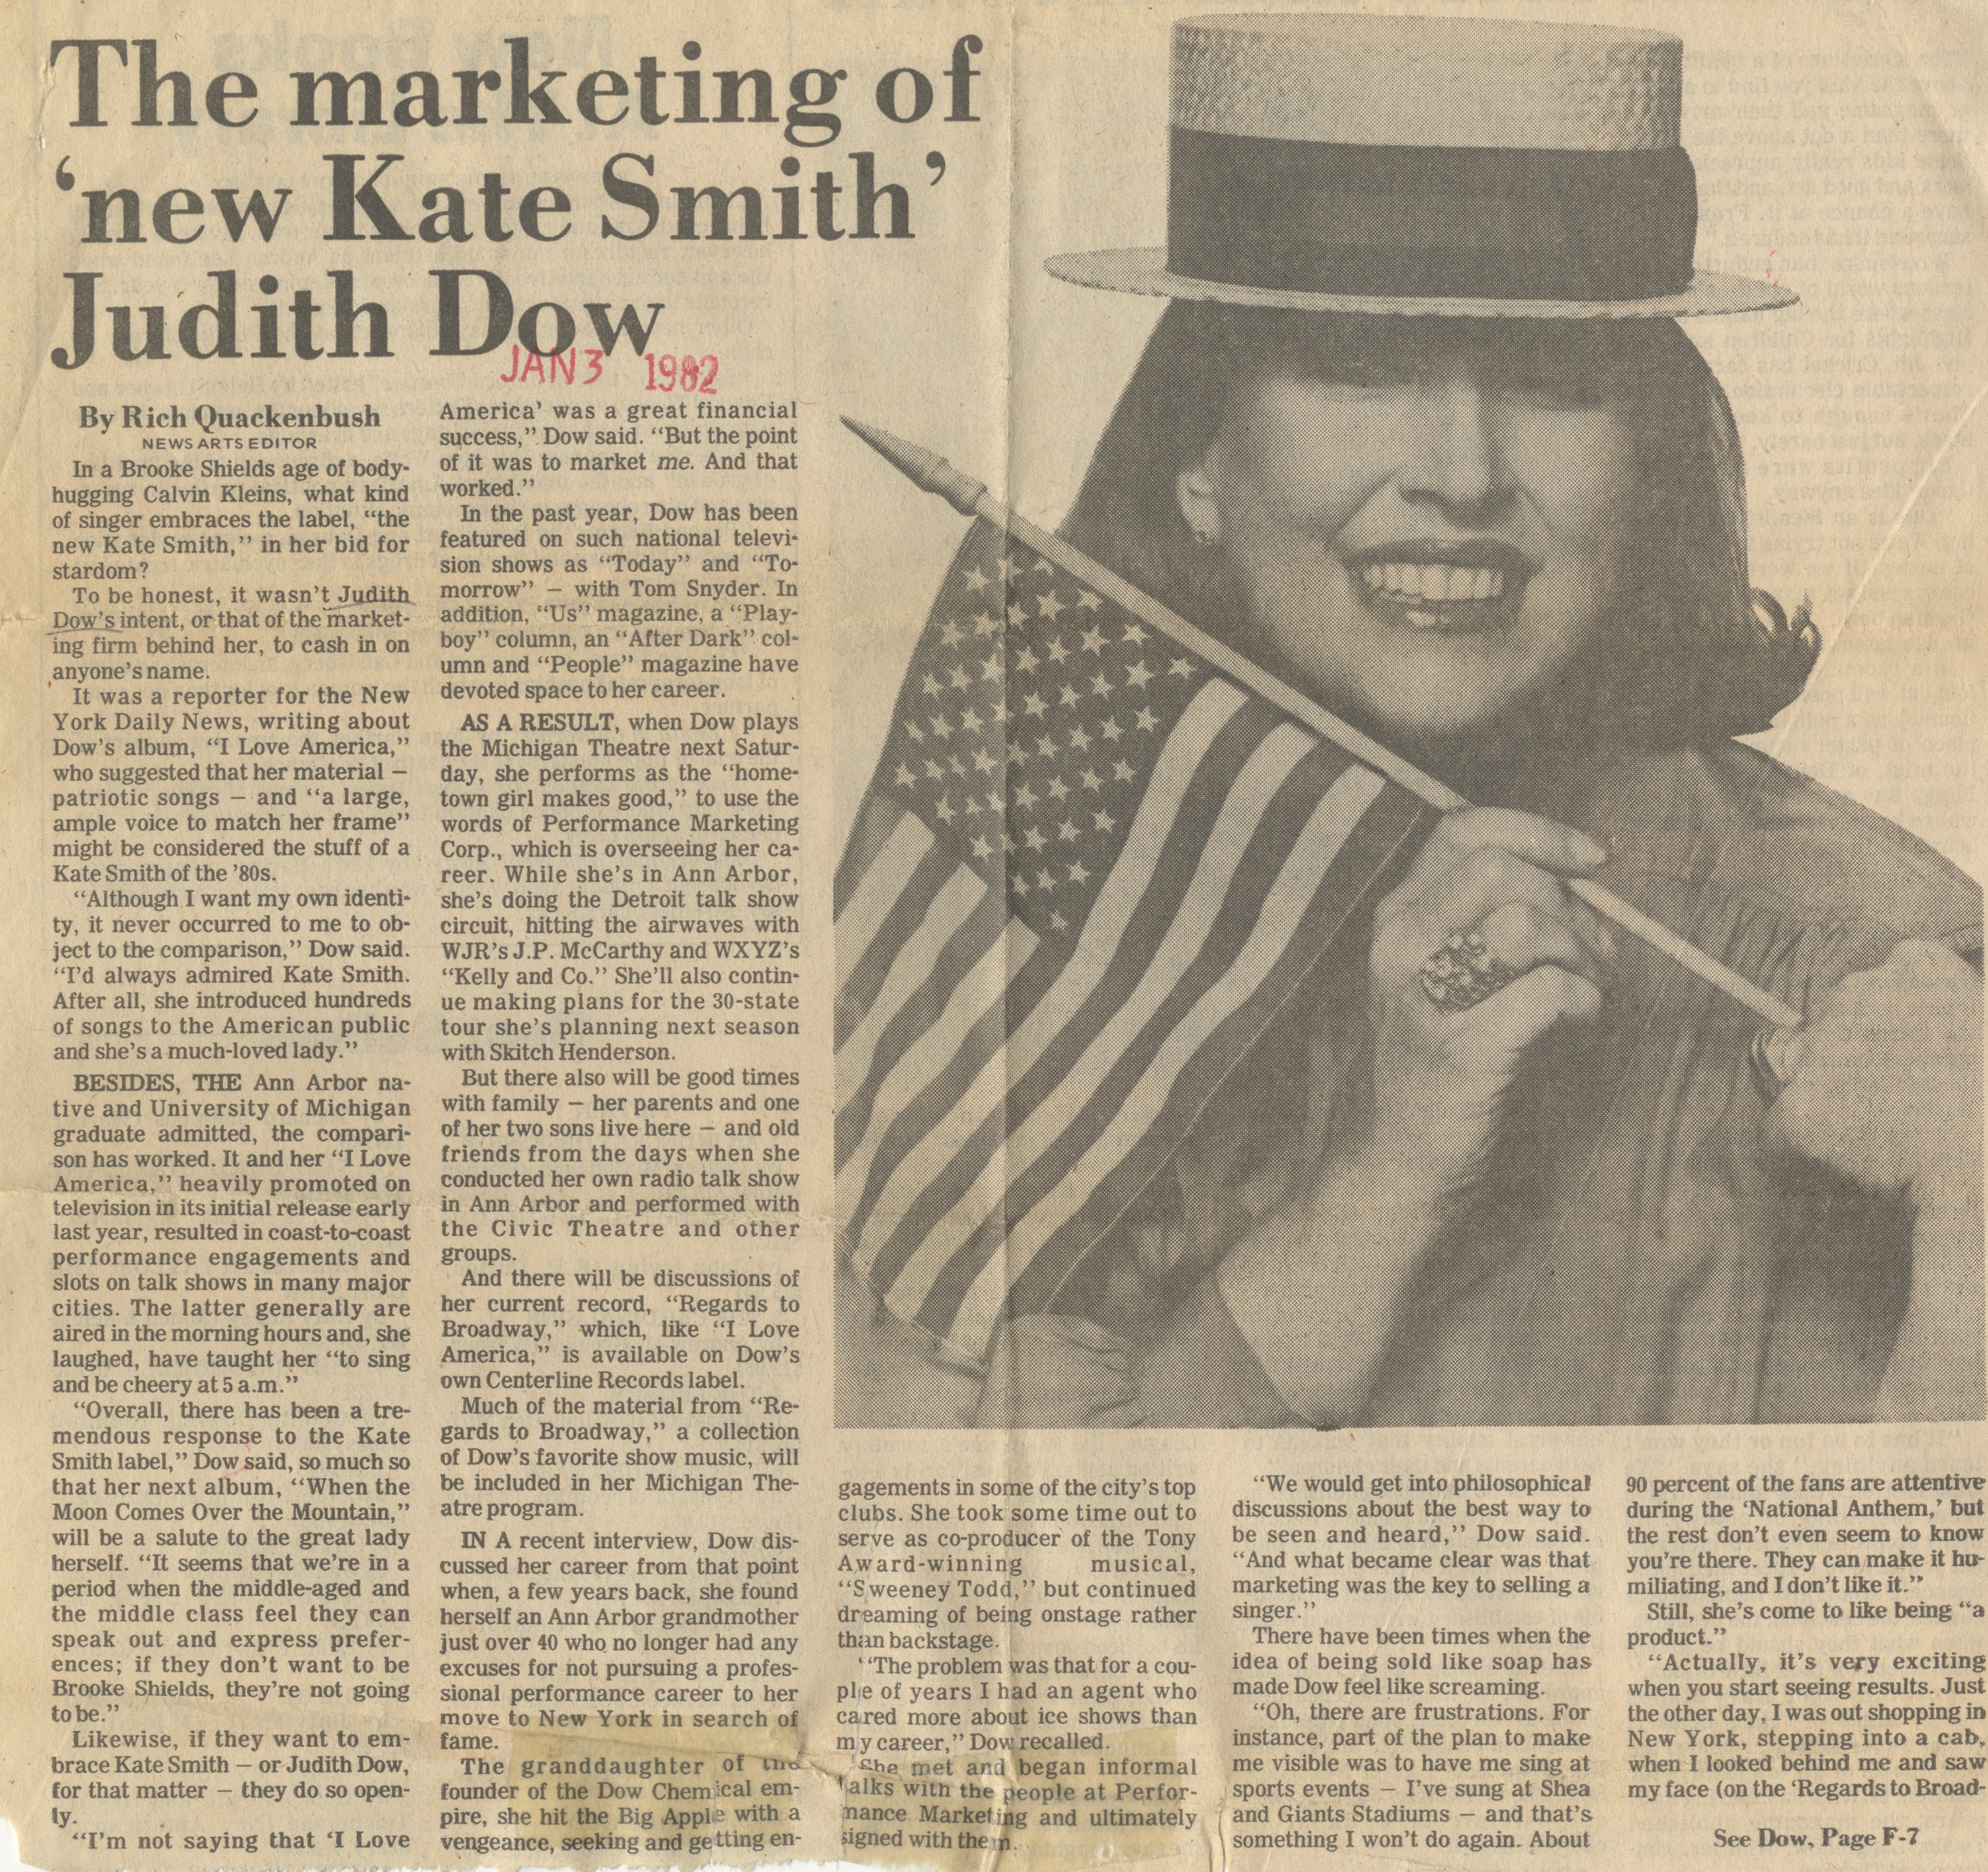 The Marketing Of  'New Kate Smith' Judith Dow image